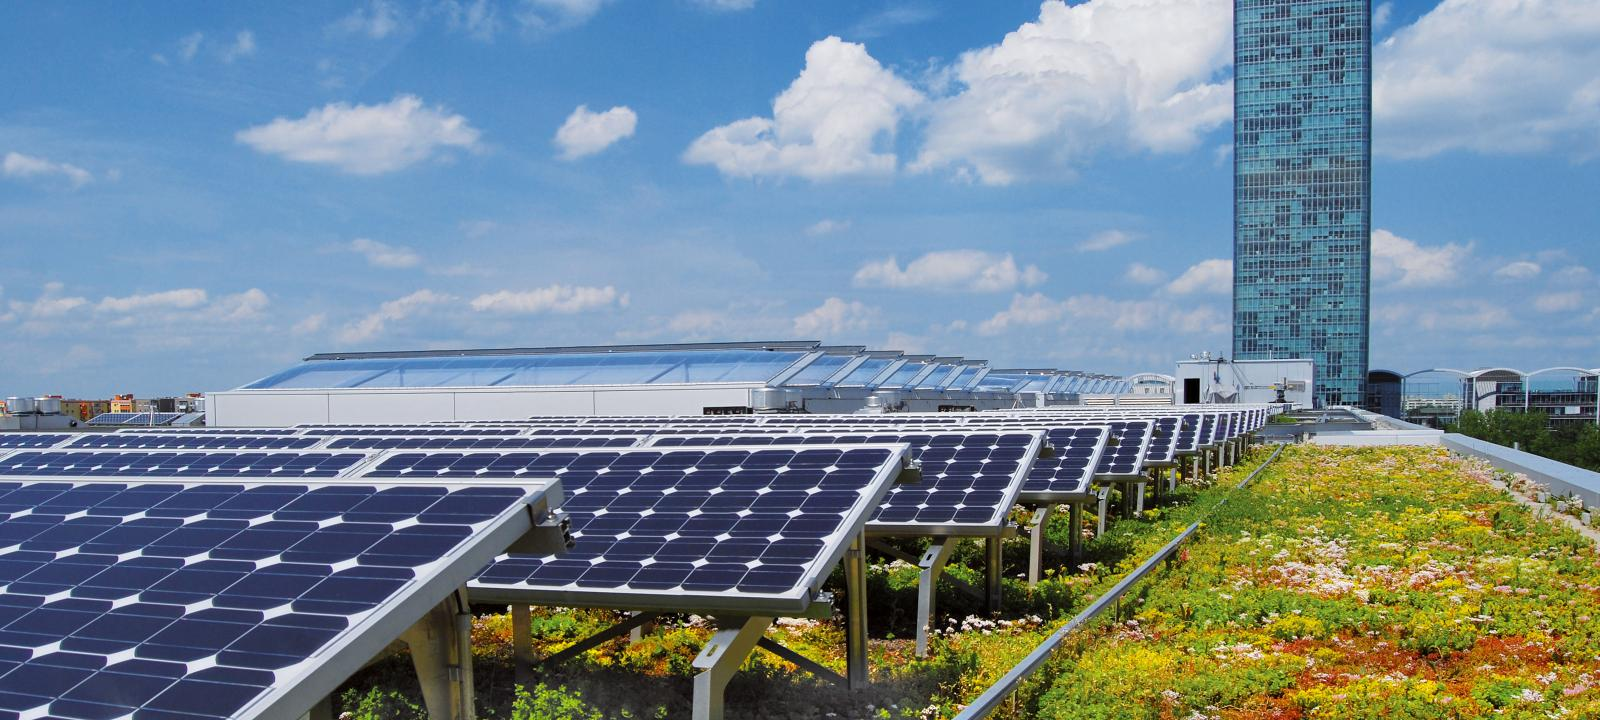 Green Roofs And Solar Energy Zinco Green Roof Systems